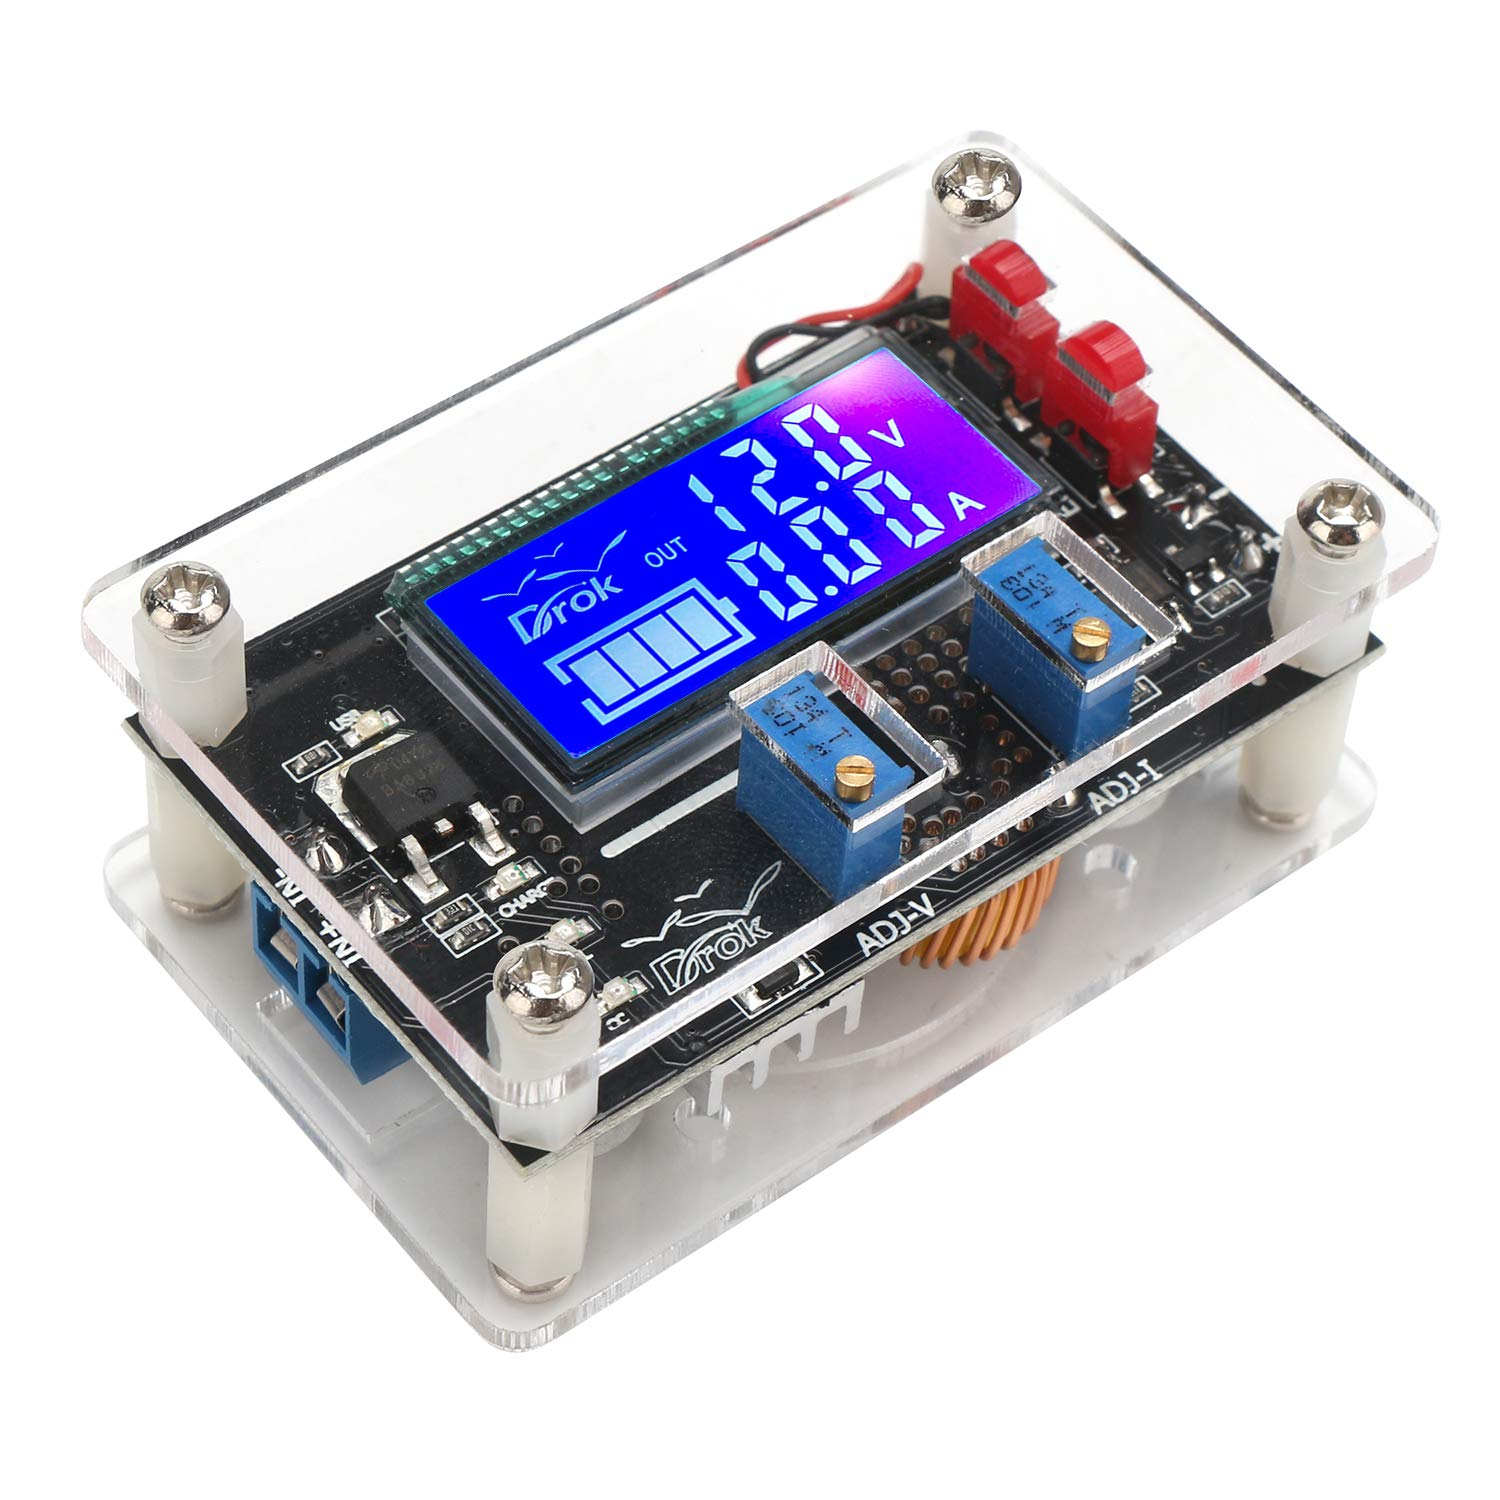 24v To 36v Battery Charger Circuit Electronics Projects